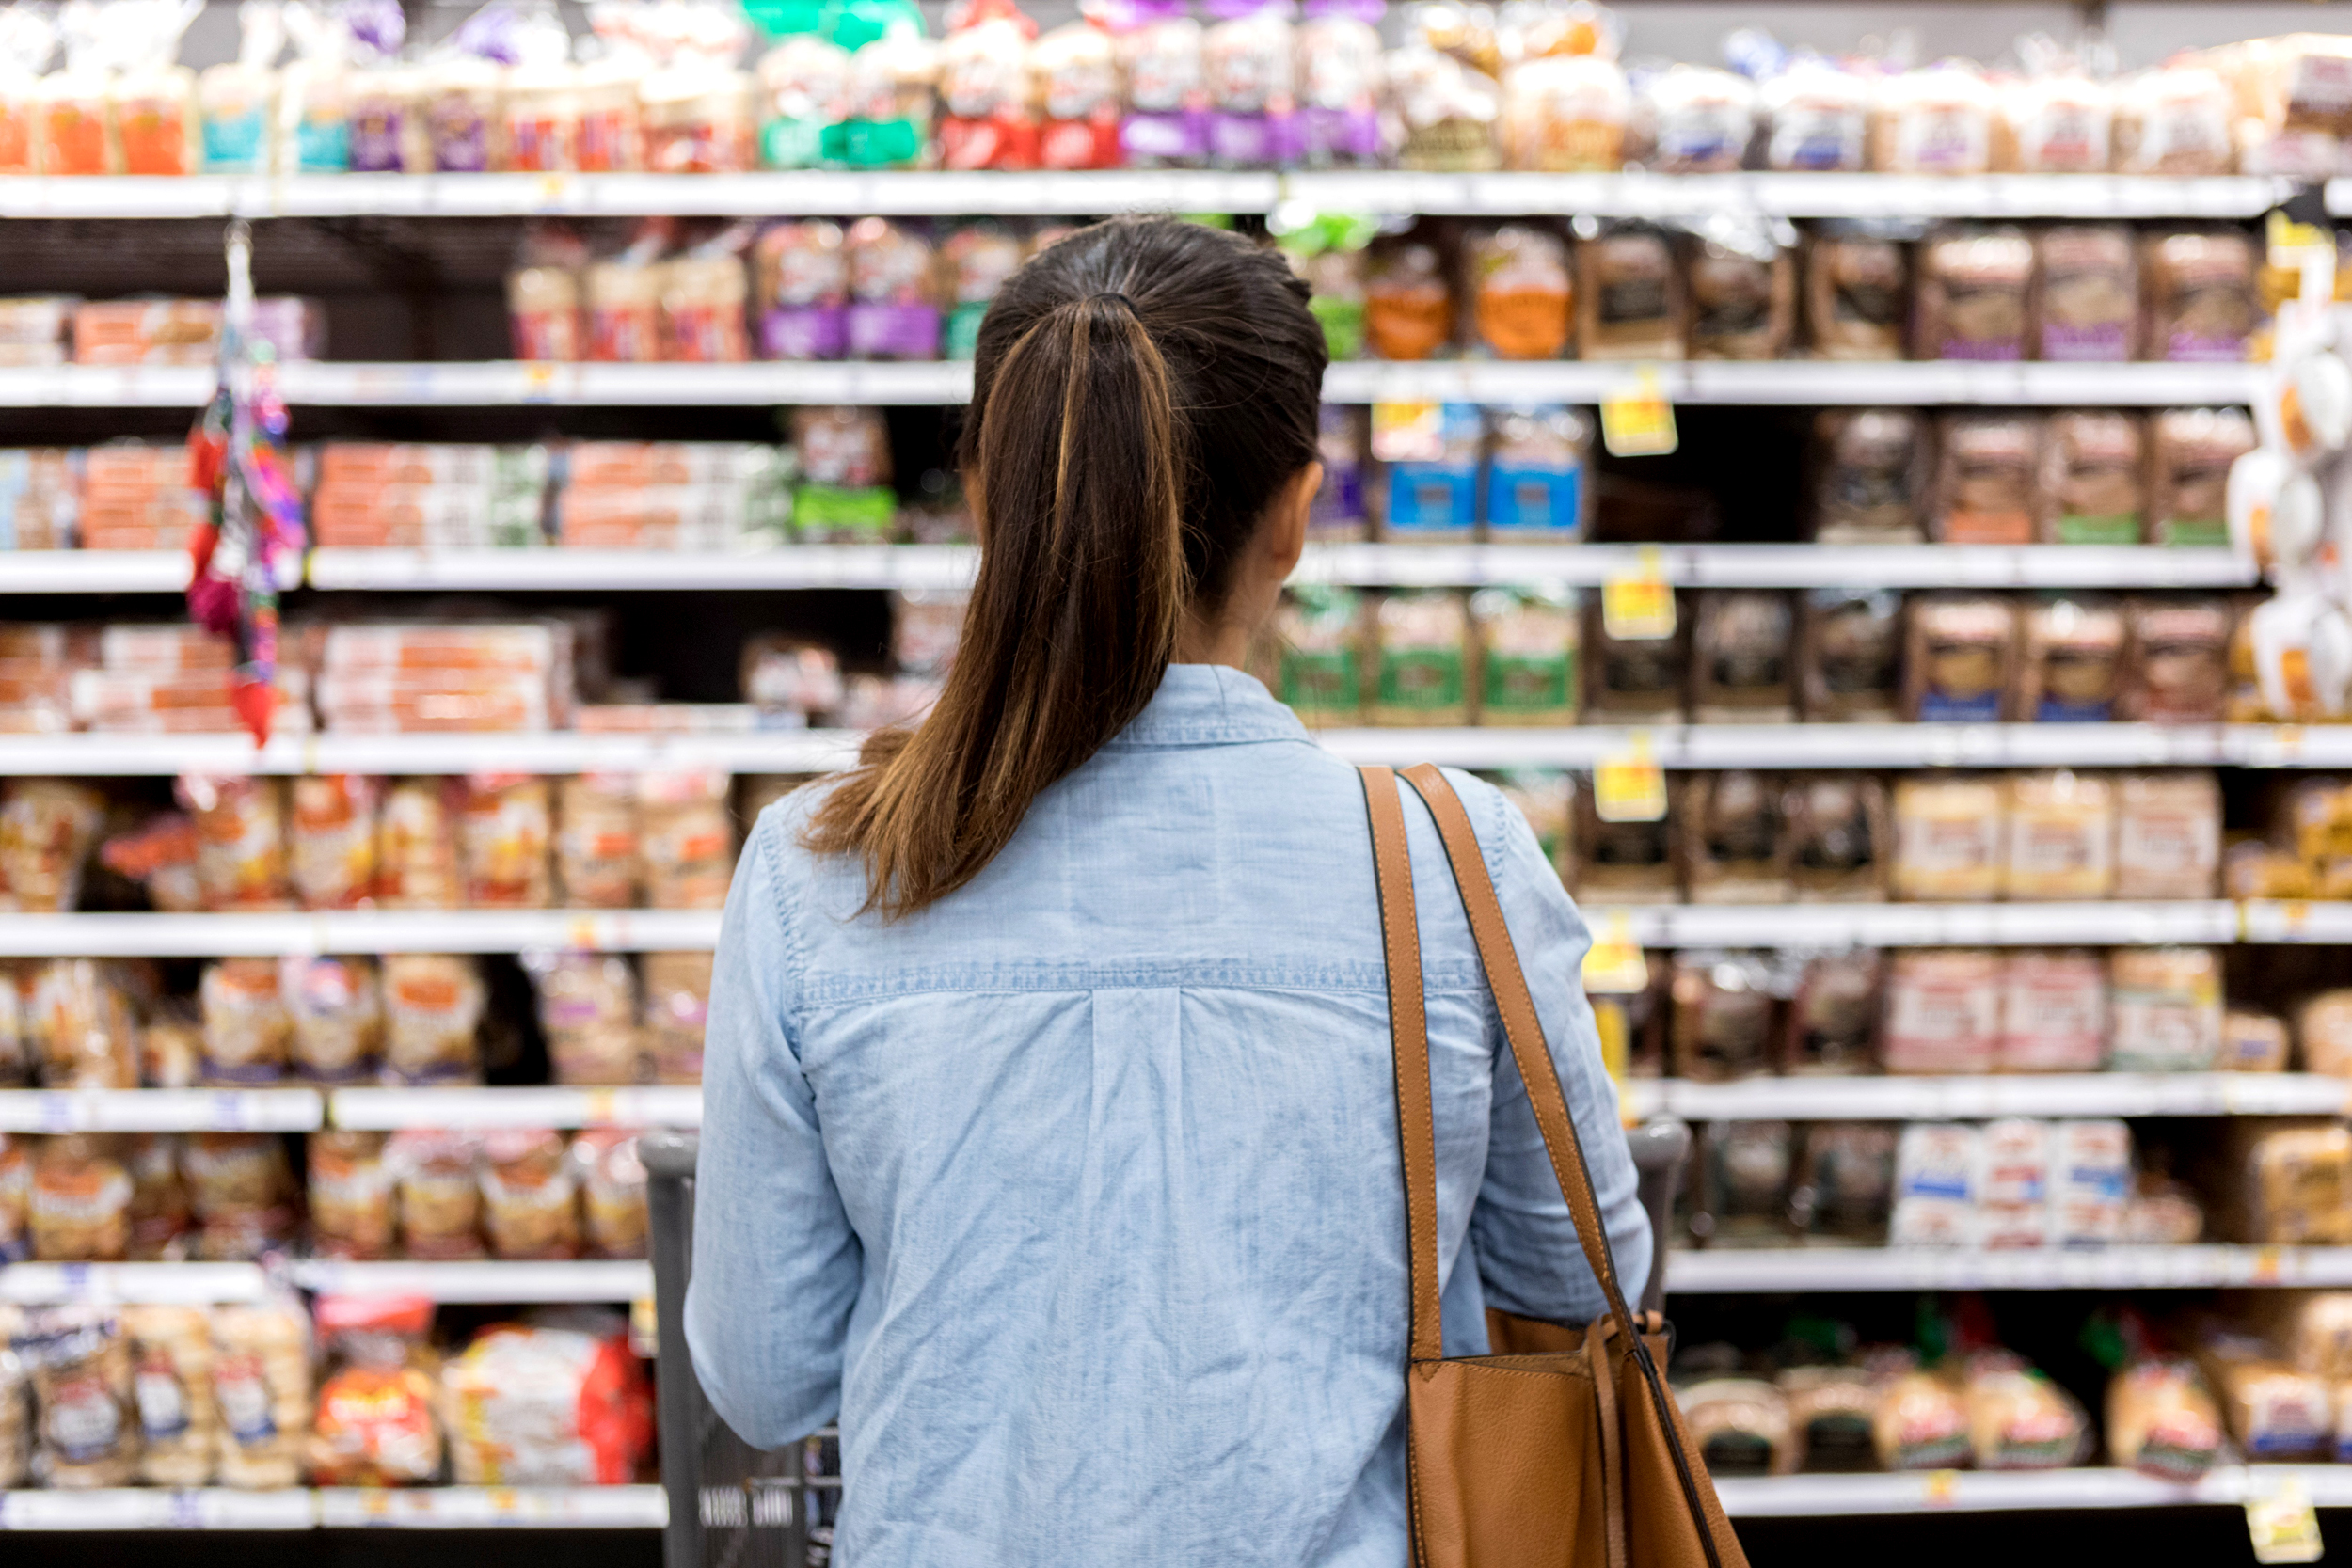 Ultraprocessed-food-leads-to-weight-gain,-study-finds